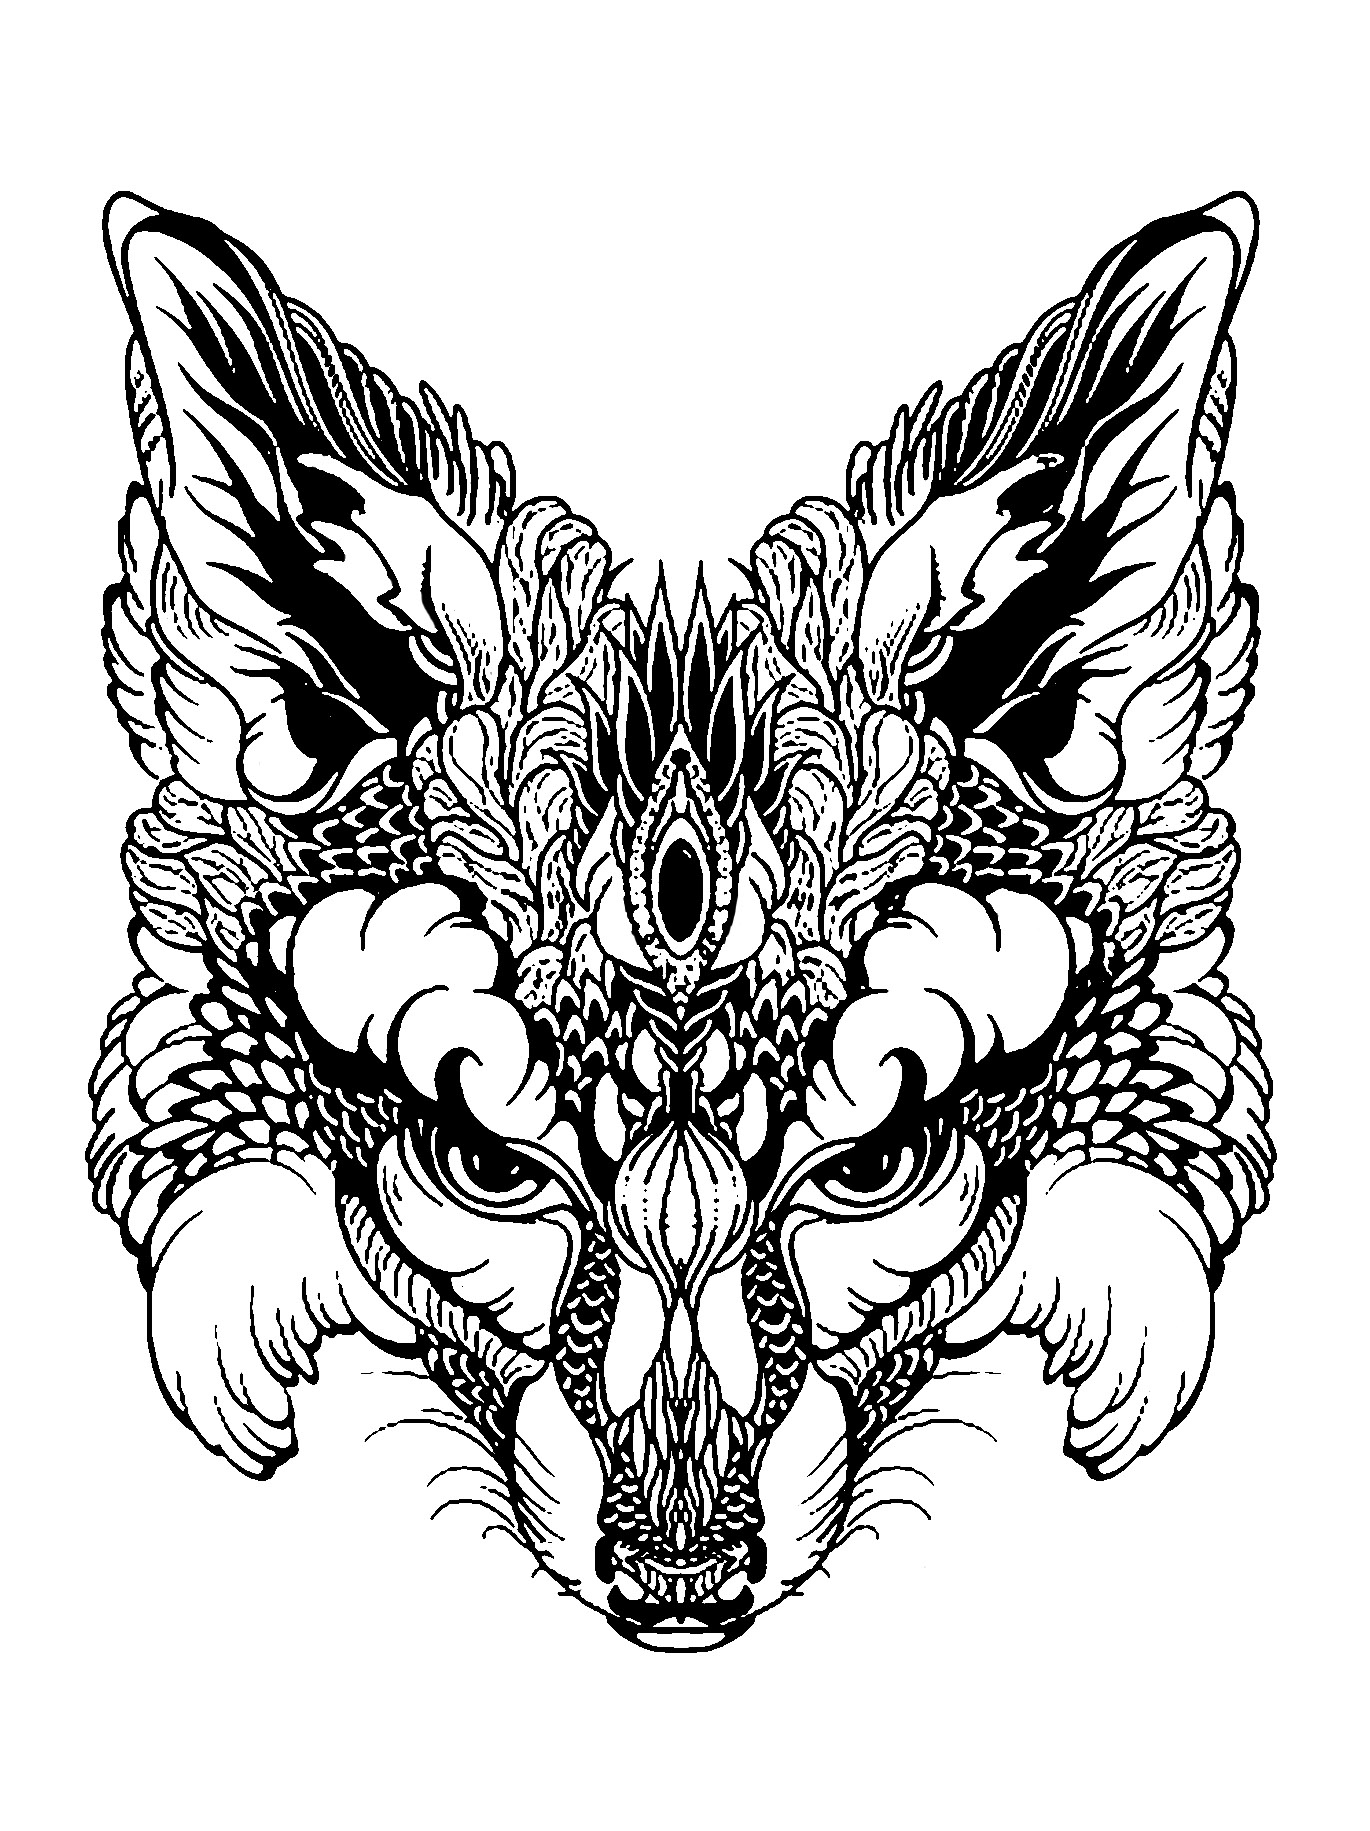 Coloring page of a fox in black & white